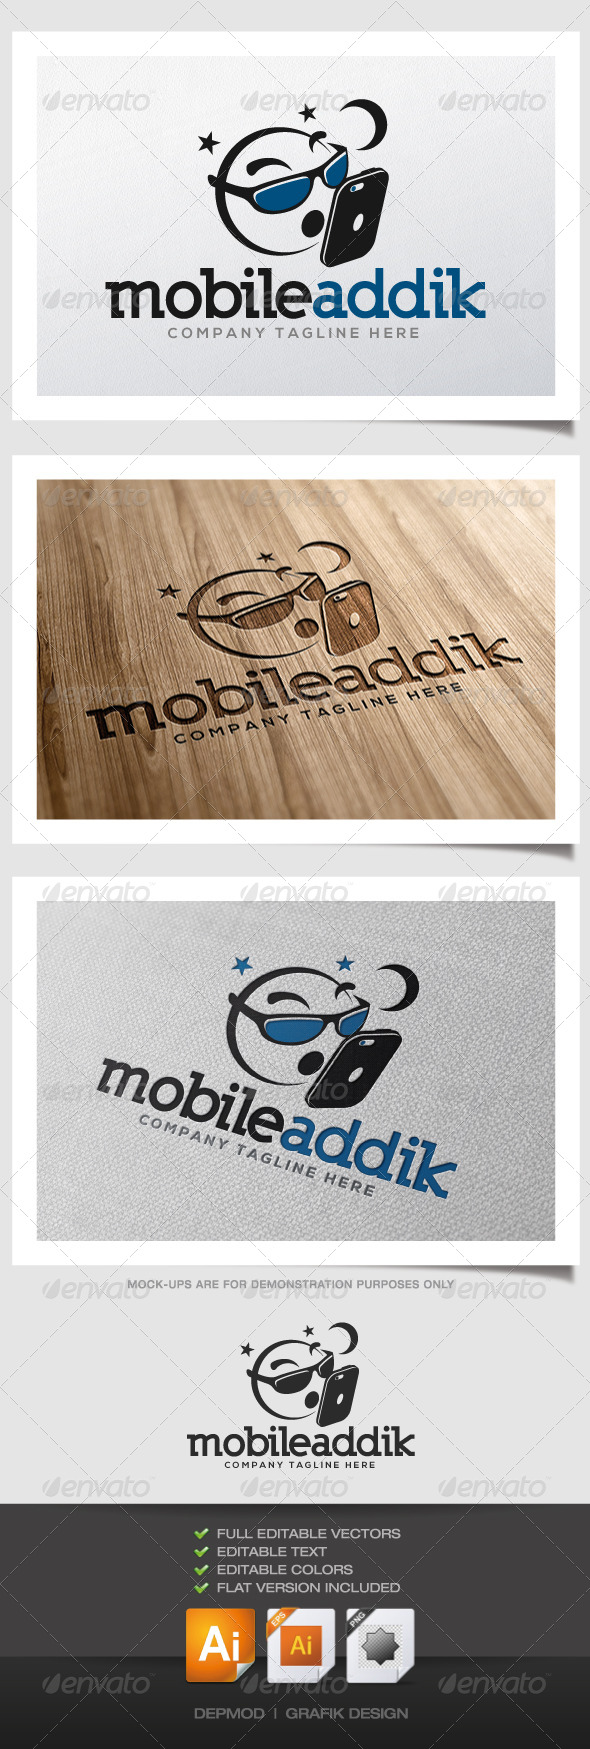 Mobile Addik Logo - Symbols Logo Templates